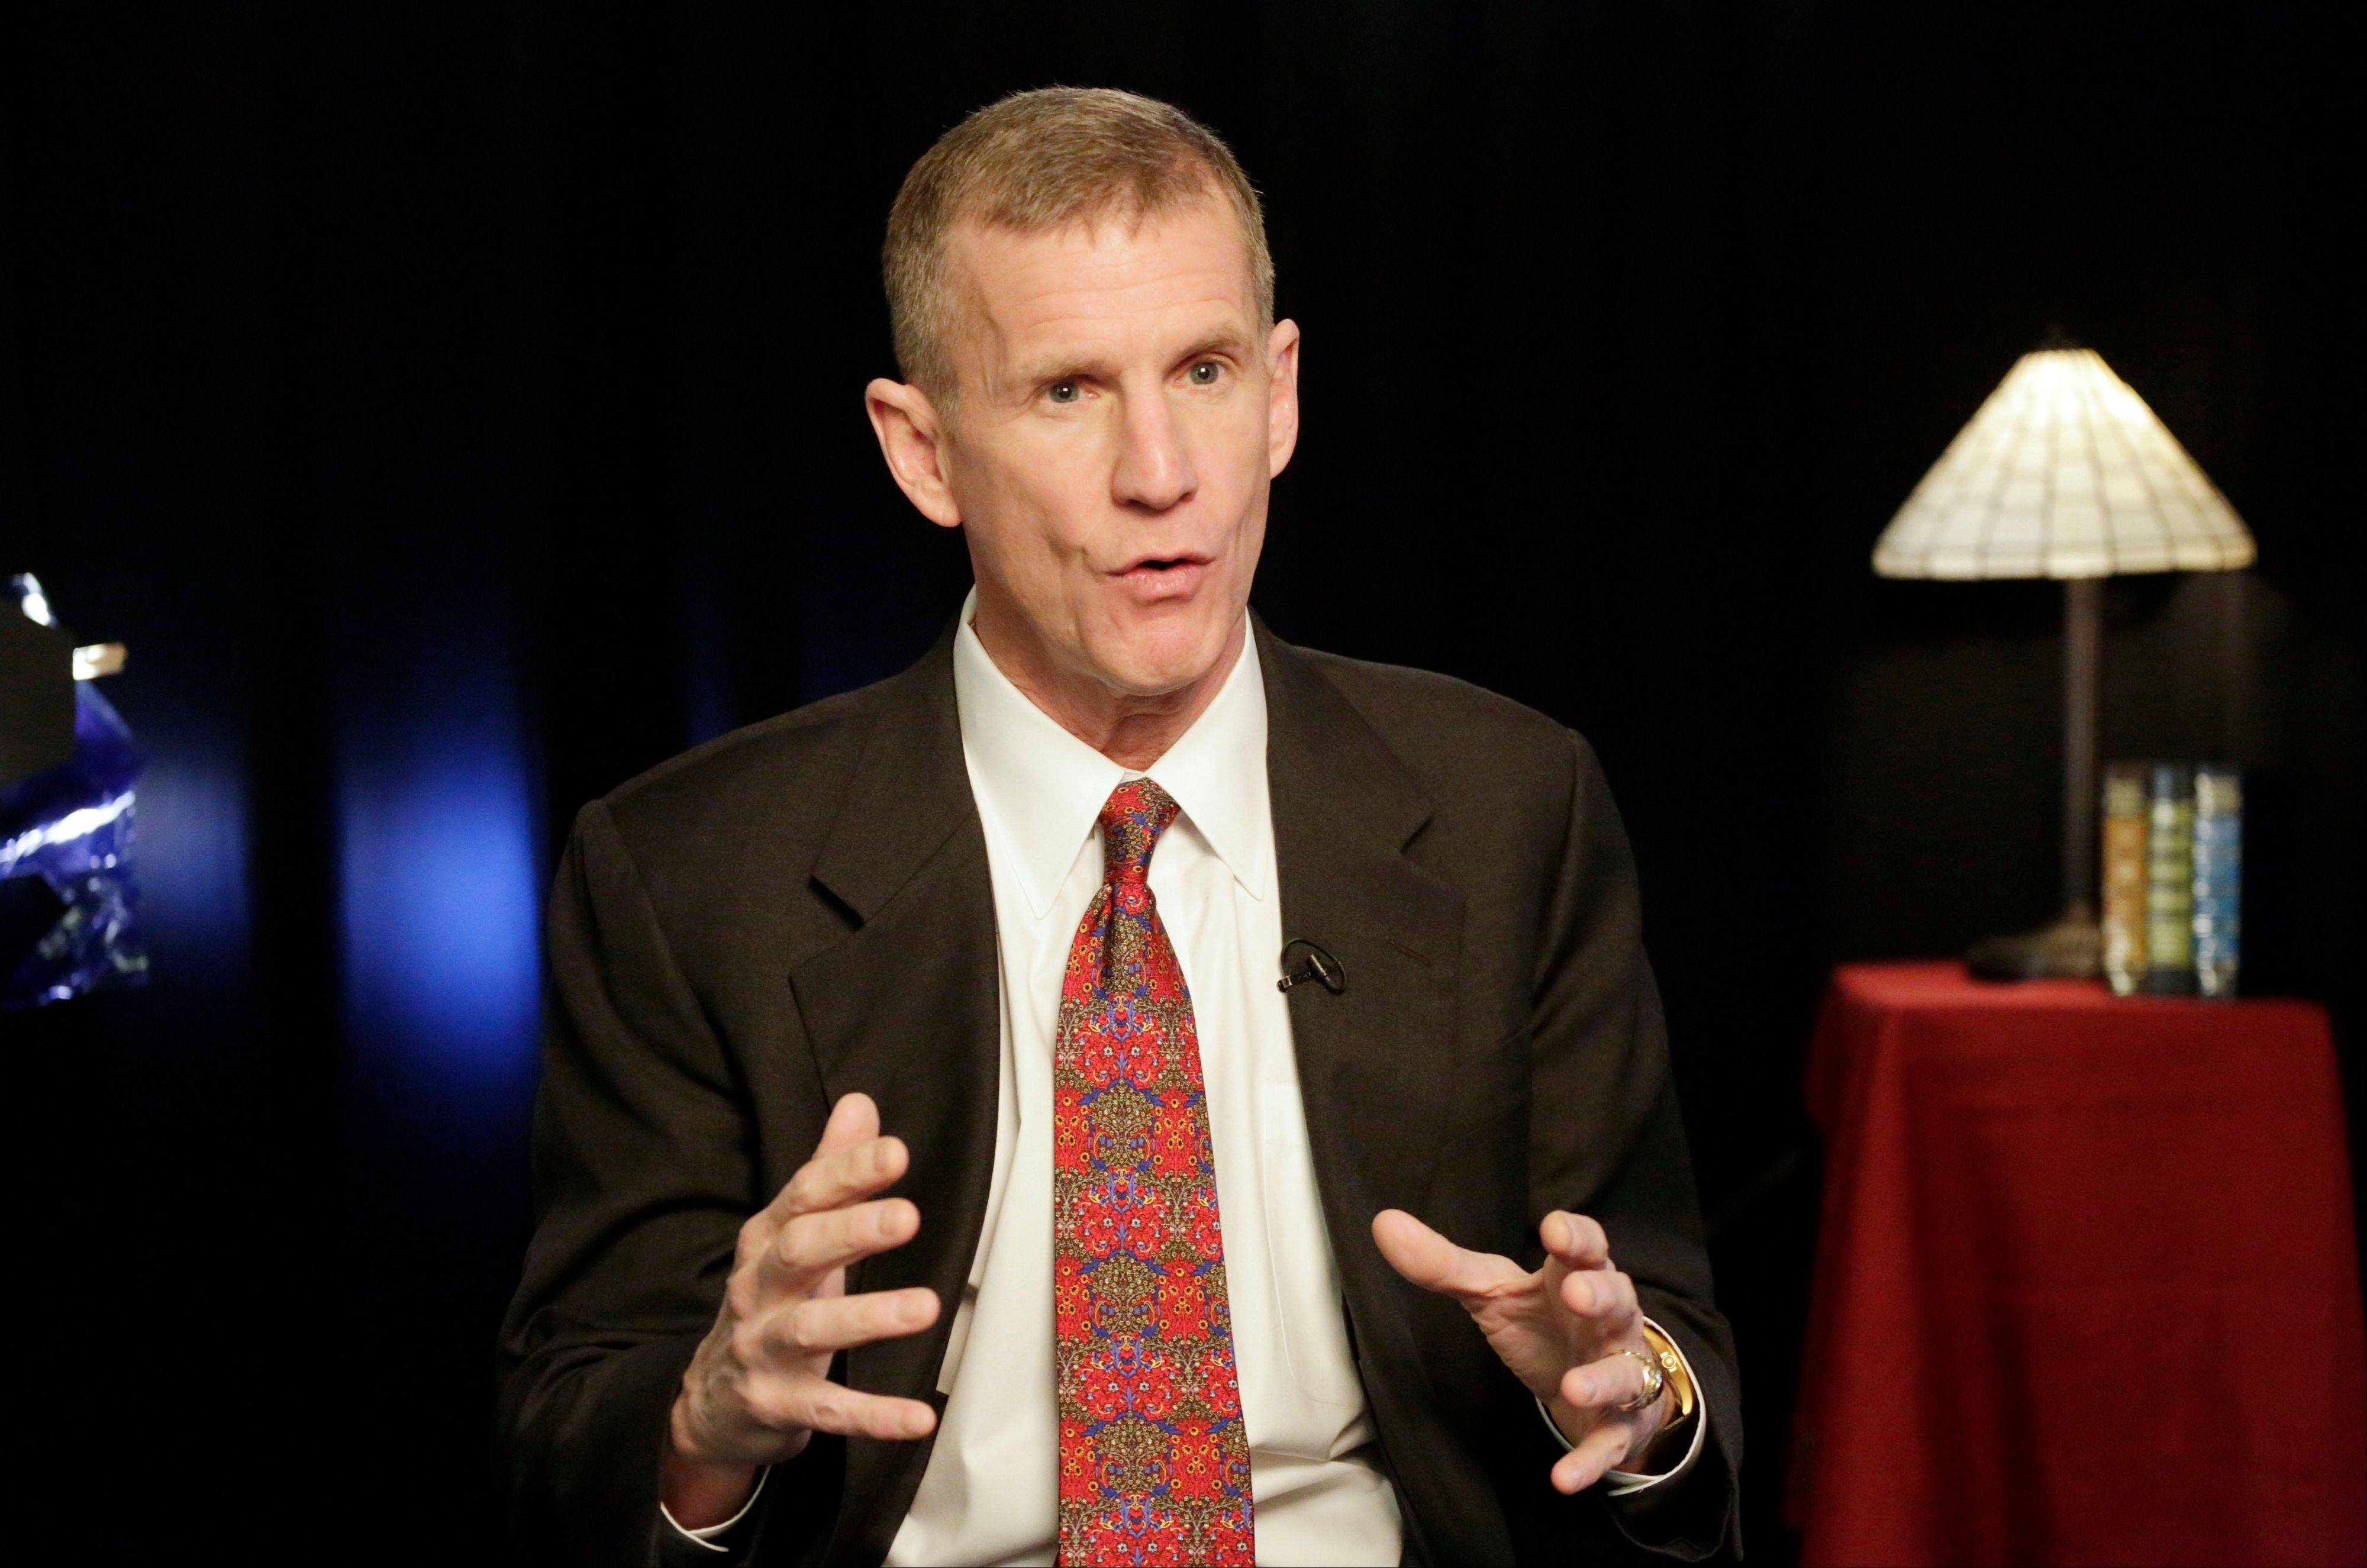 Retired Gen. Stanley McChrystal says he was �completely surprised� by the uproar that followed publication of a Rolling Stone article featuring derogatory comments attributed to his staff about the Obama administration.